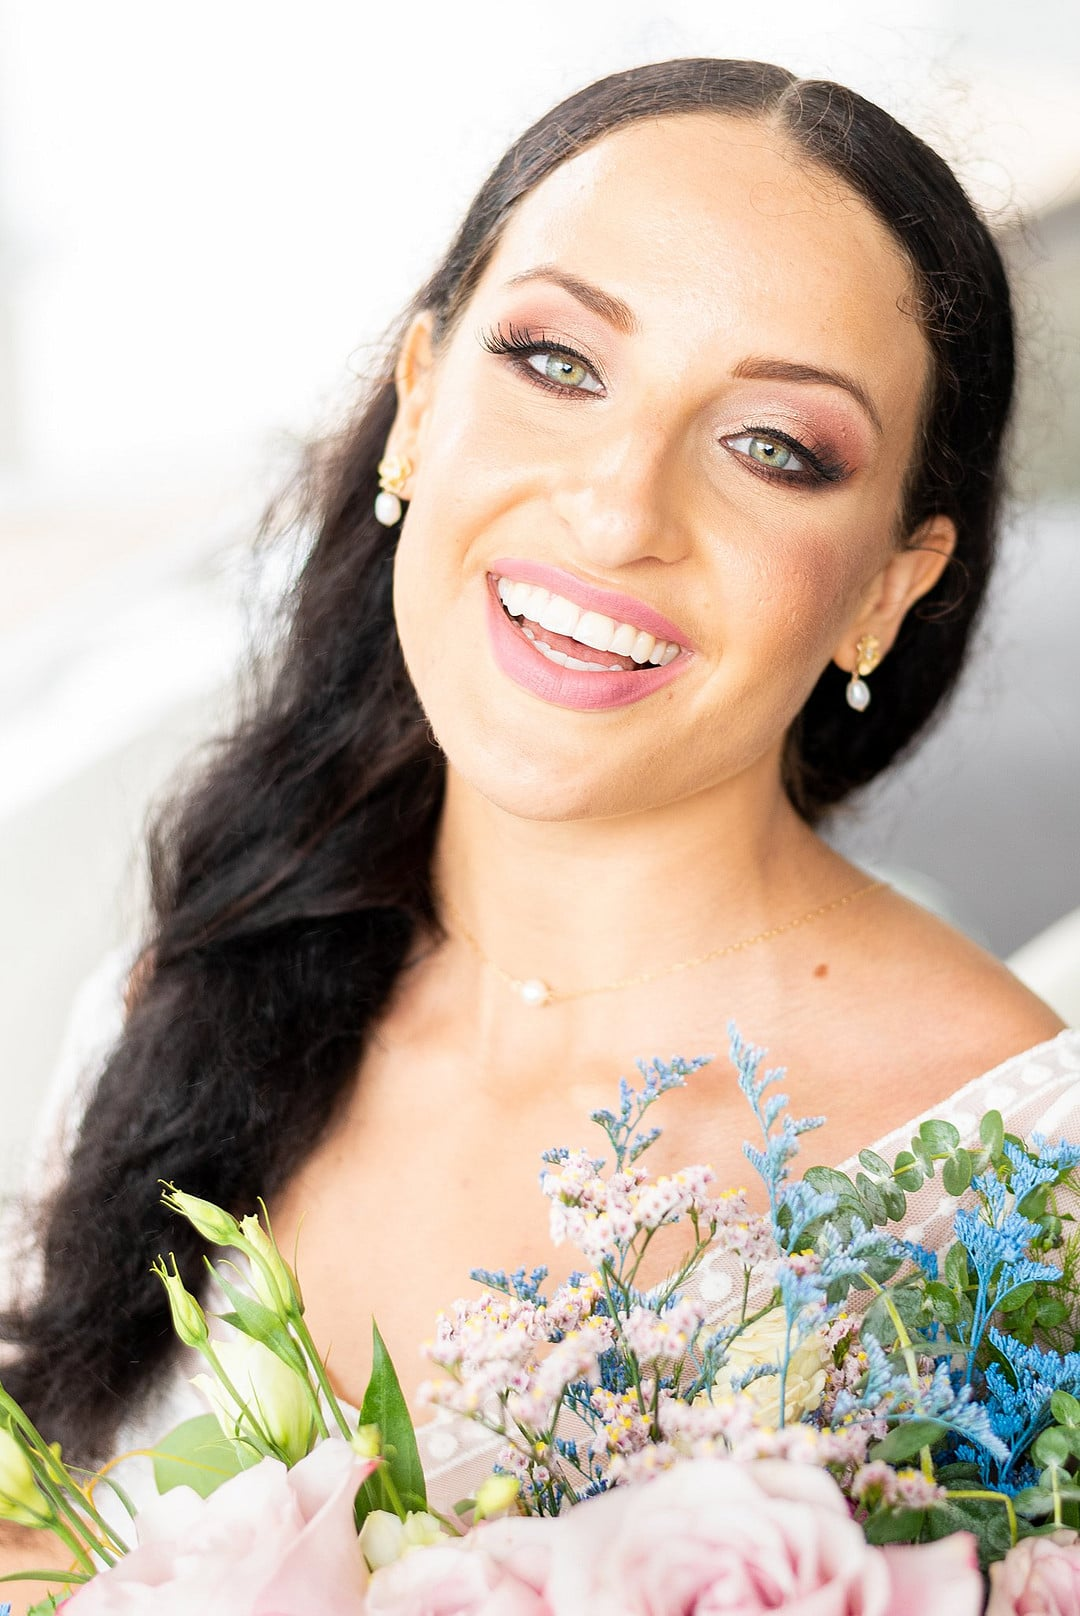 bride smiles big with light colored makeup and dark hair parted down the middle with her bouquet close to her chest